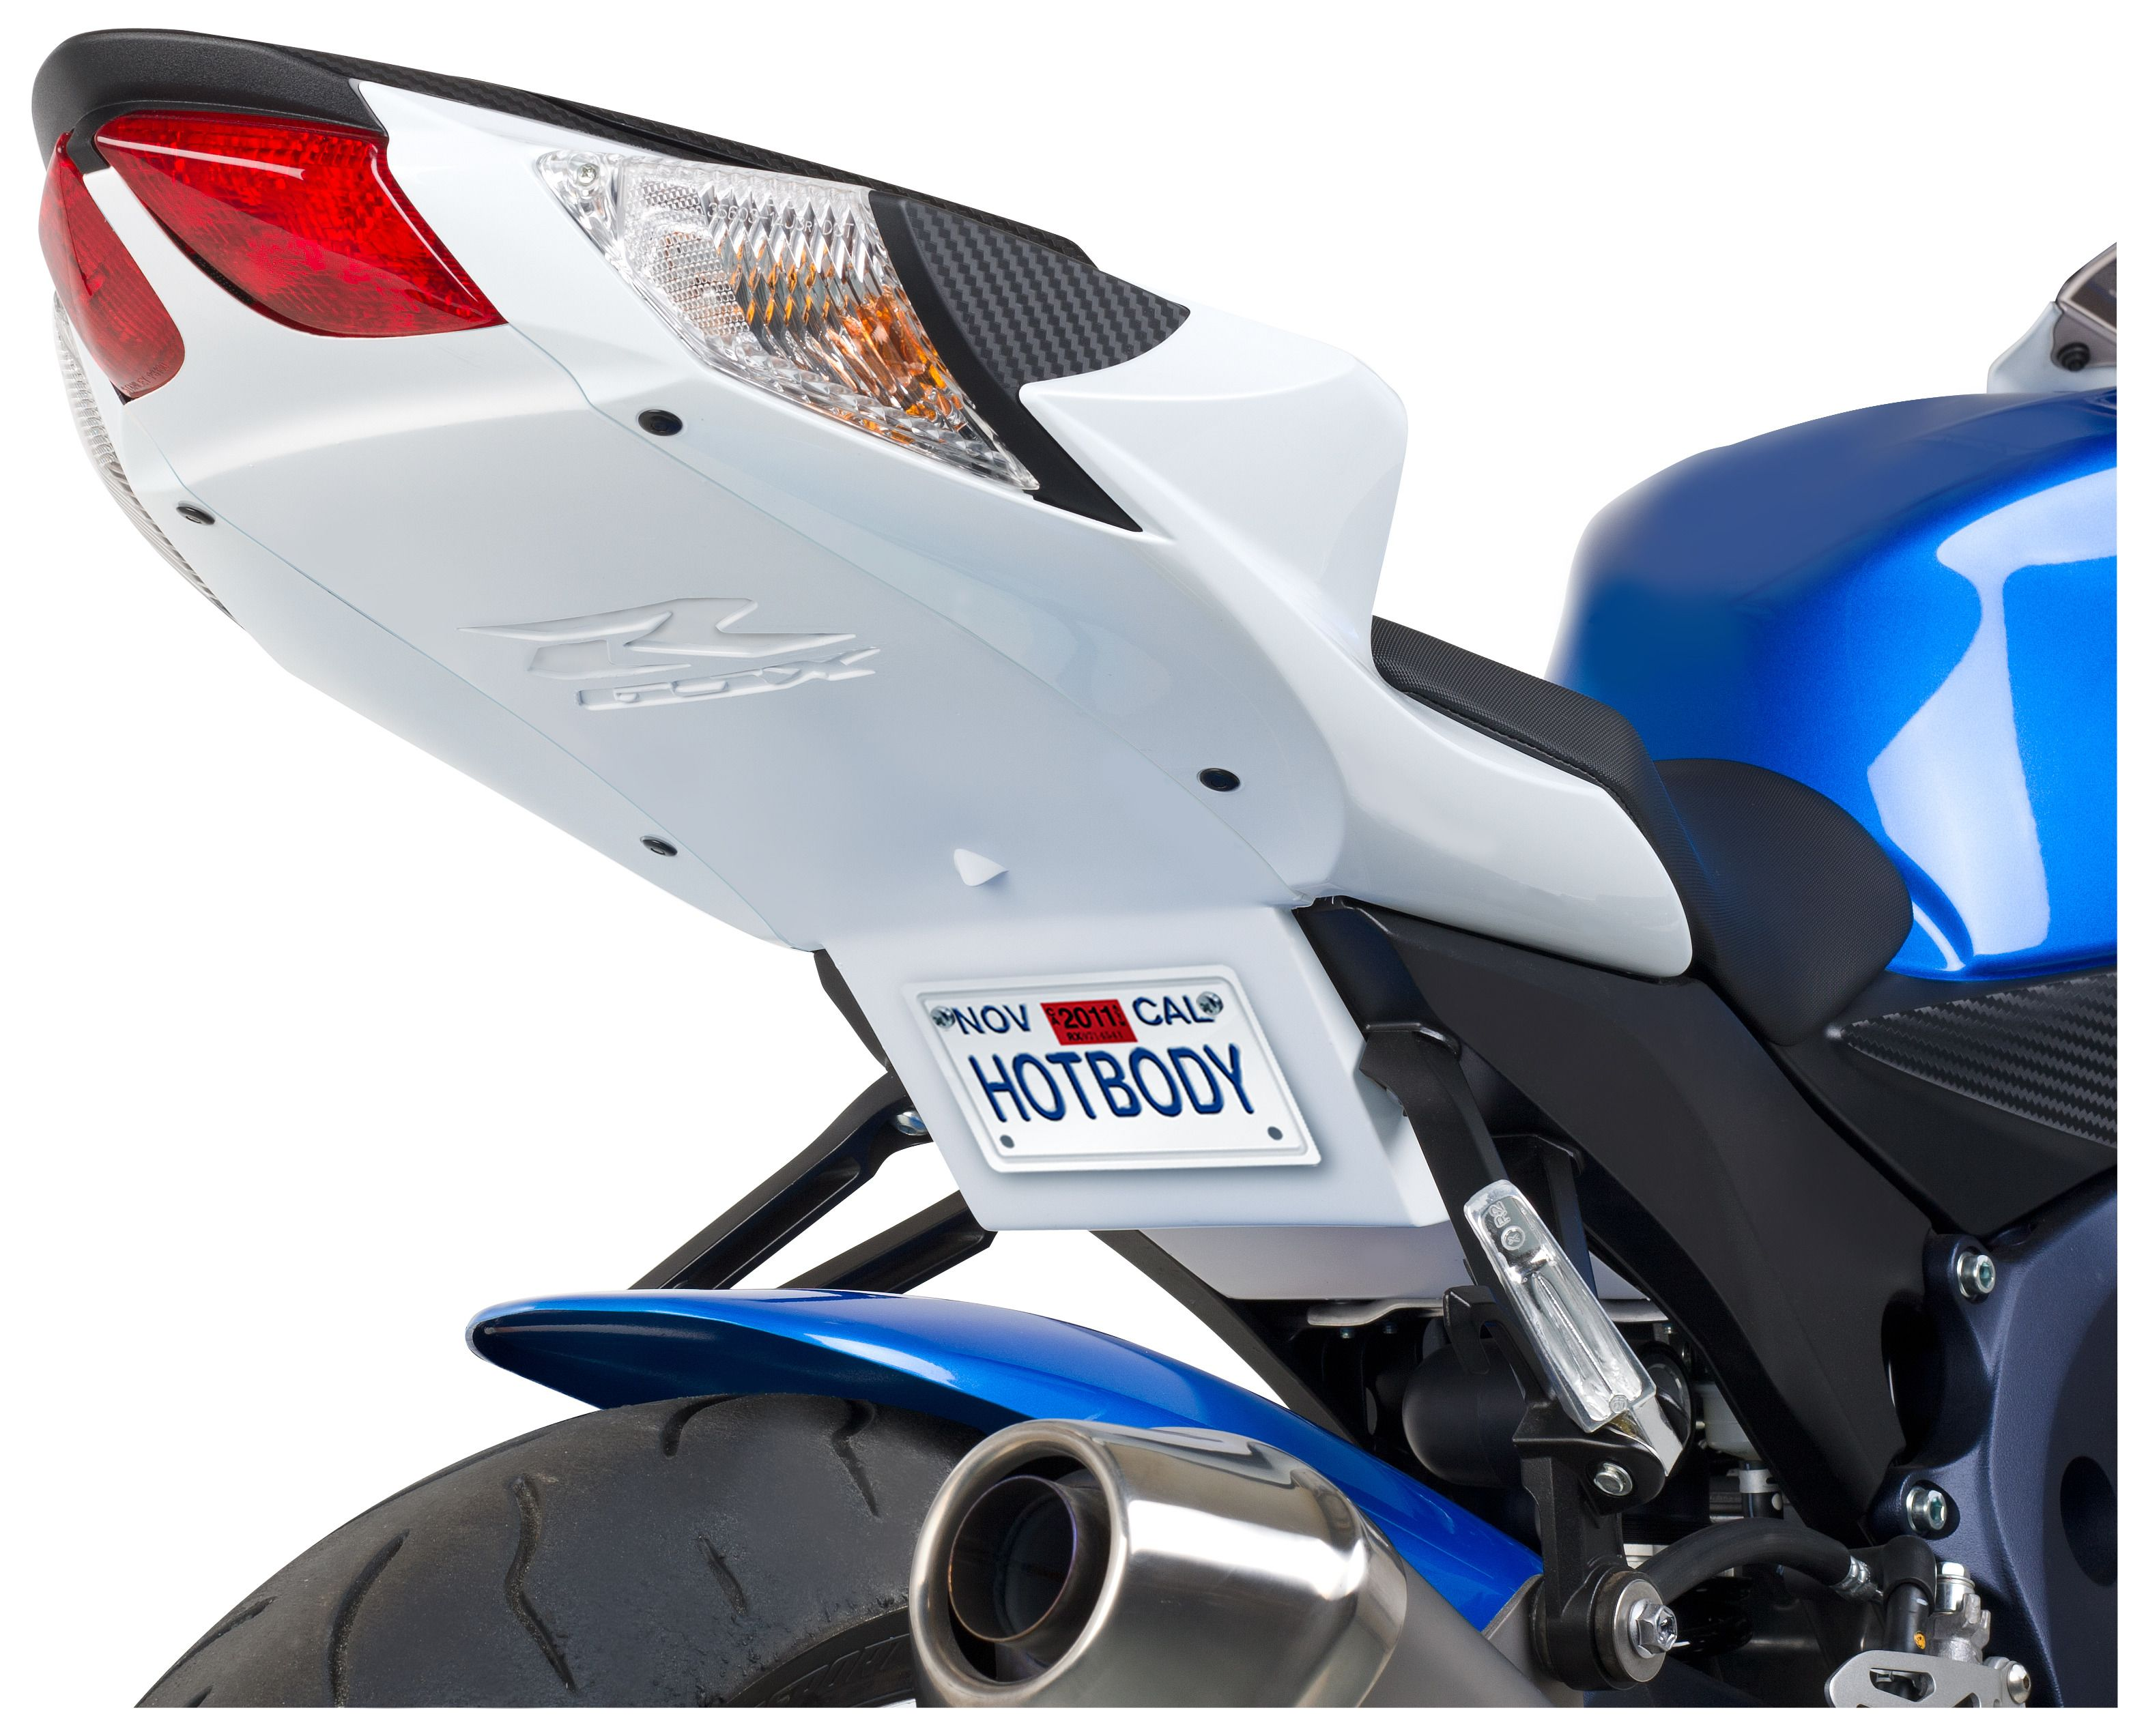 Hotbodies Supersport Undertail Kit Suzuki GSXR 600 / GSXR 750 2011-2019 |  10% ($23 00) Off!